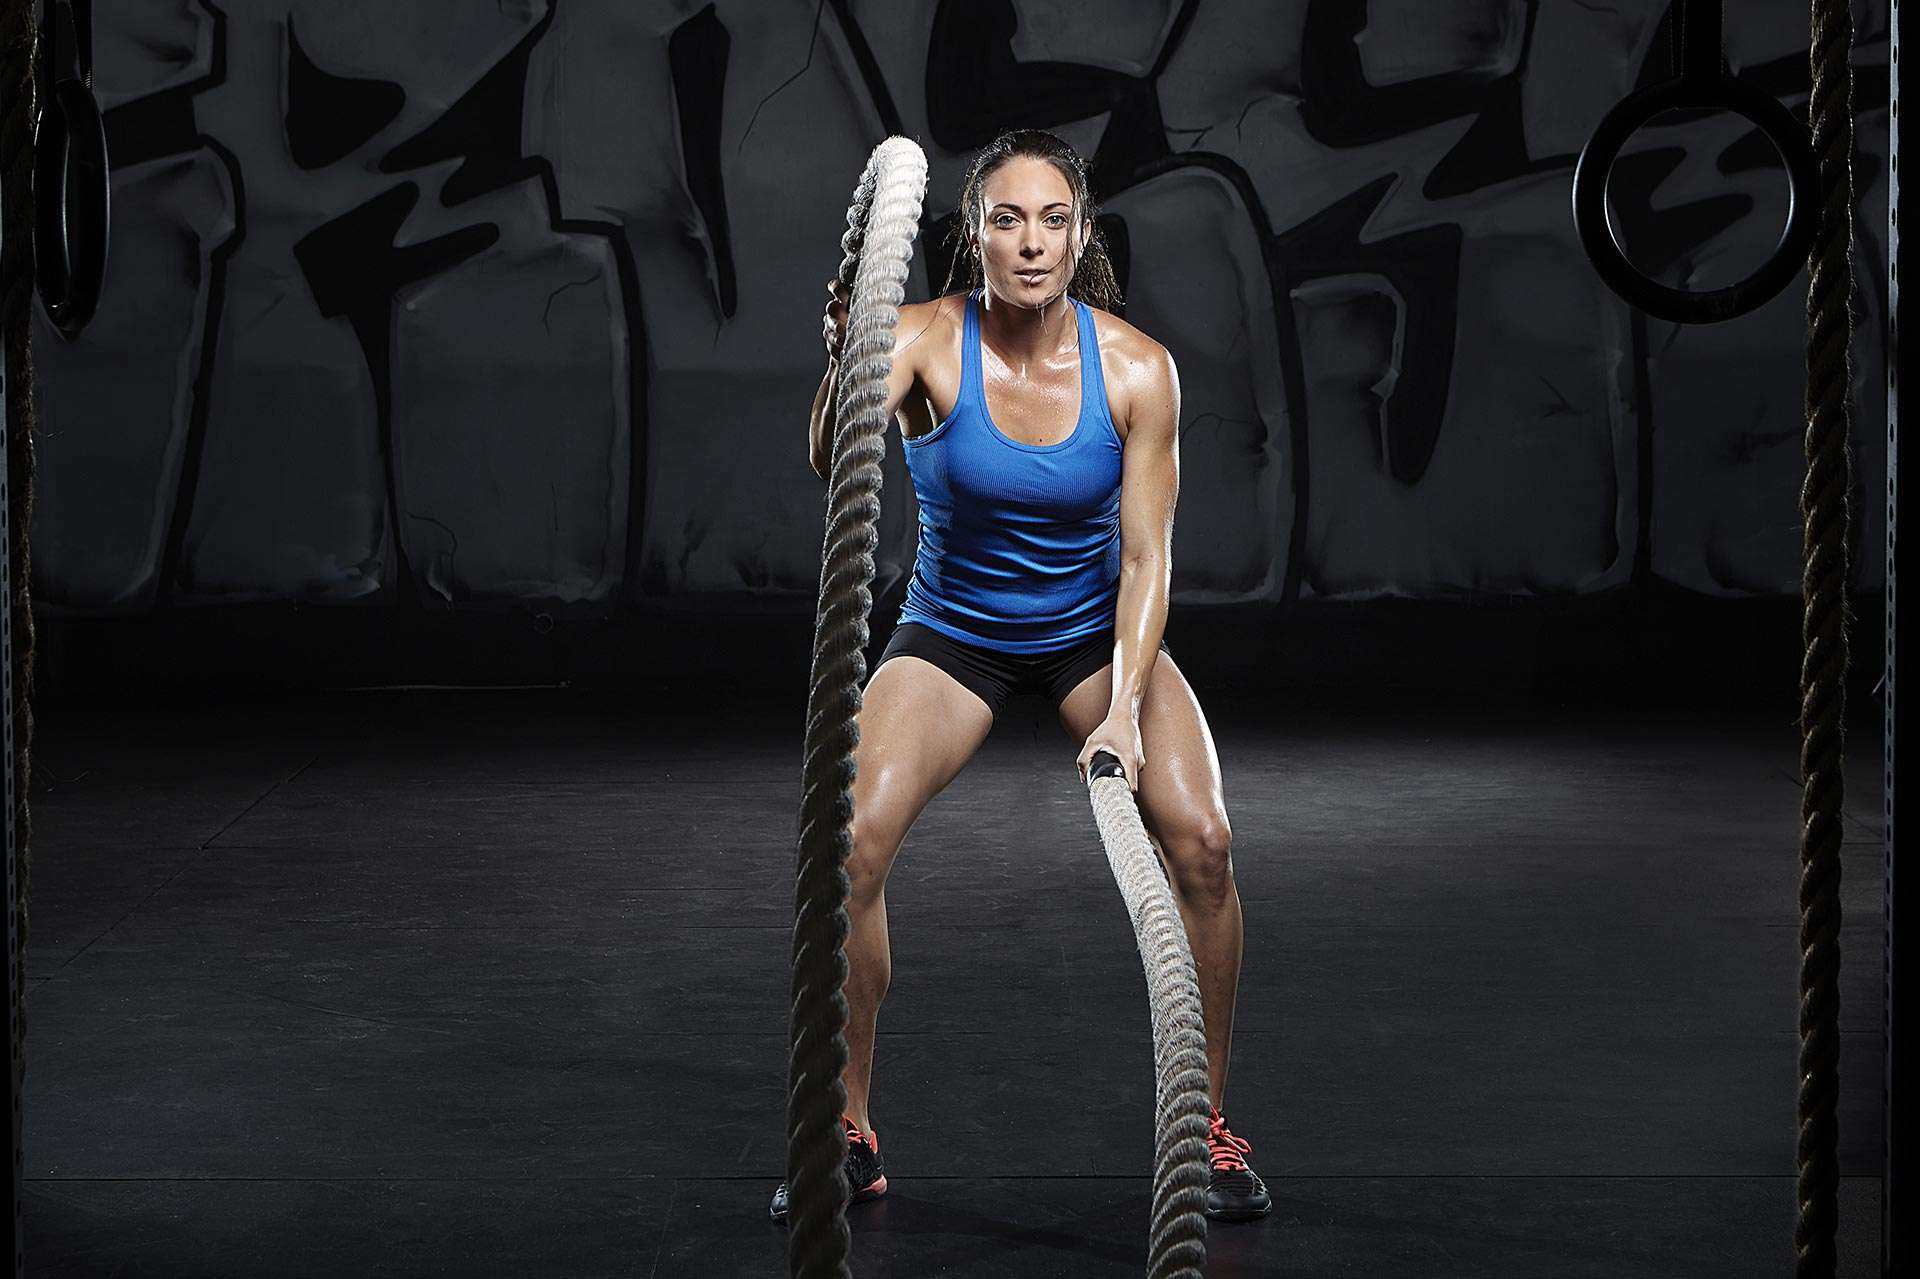 Crossfit Clothing Women